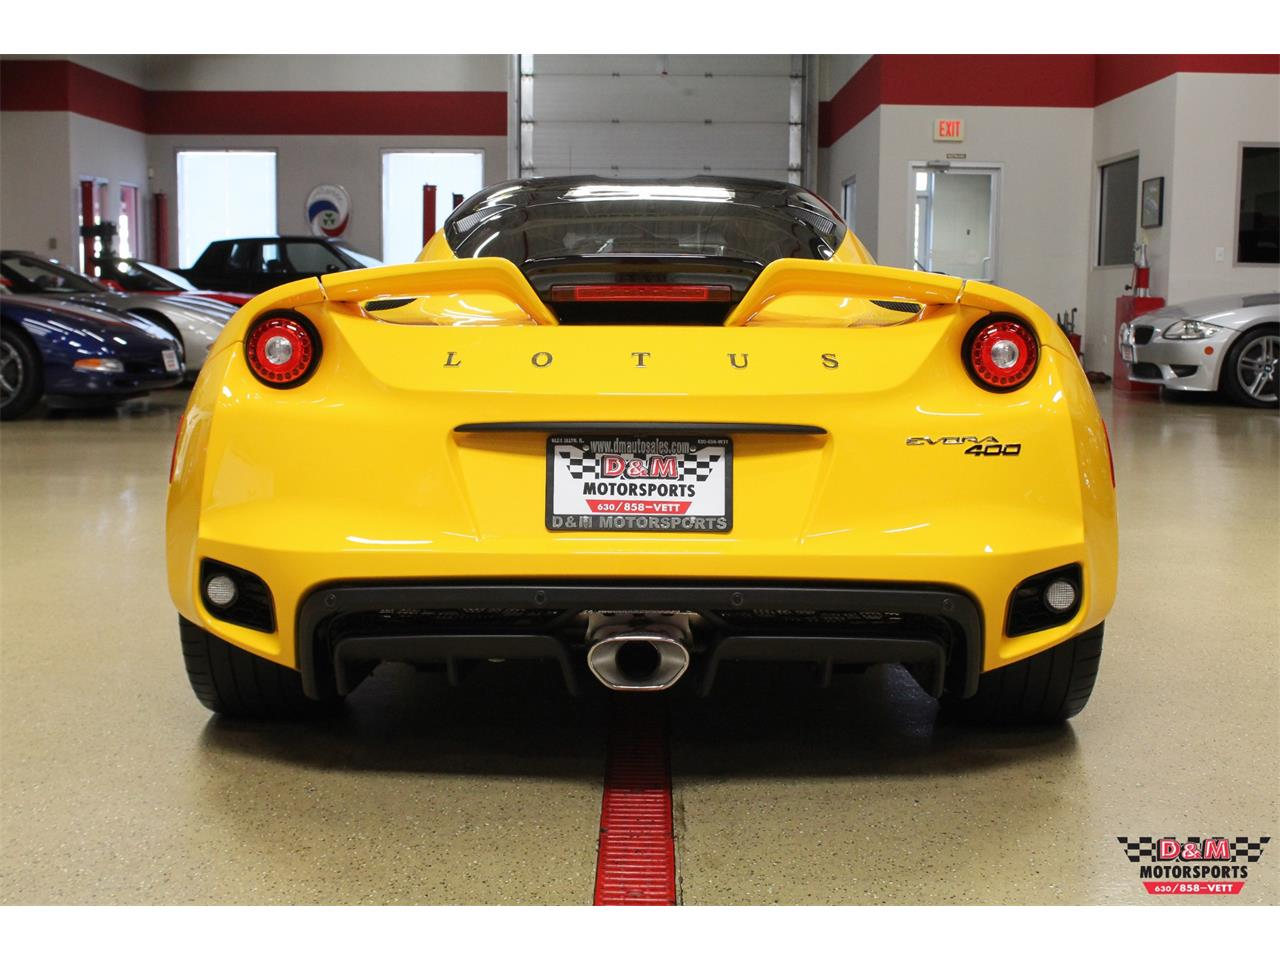 Large Picture of '17 Lotus Evora - $76,995.00 Offered by D & M Motorsports - OY1K